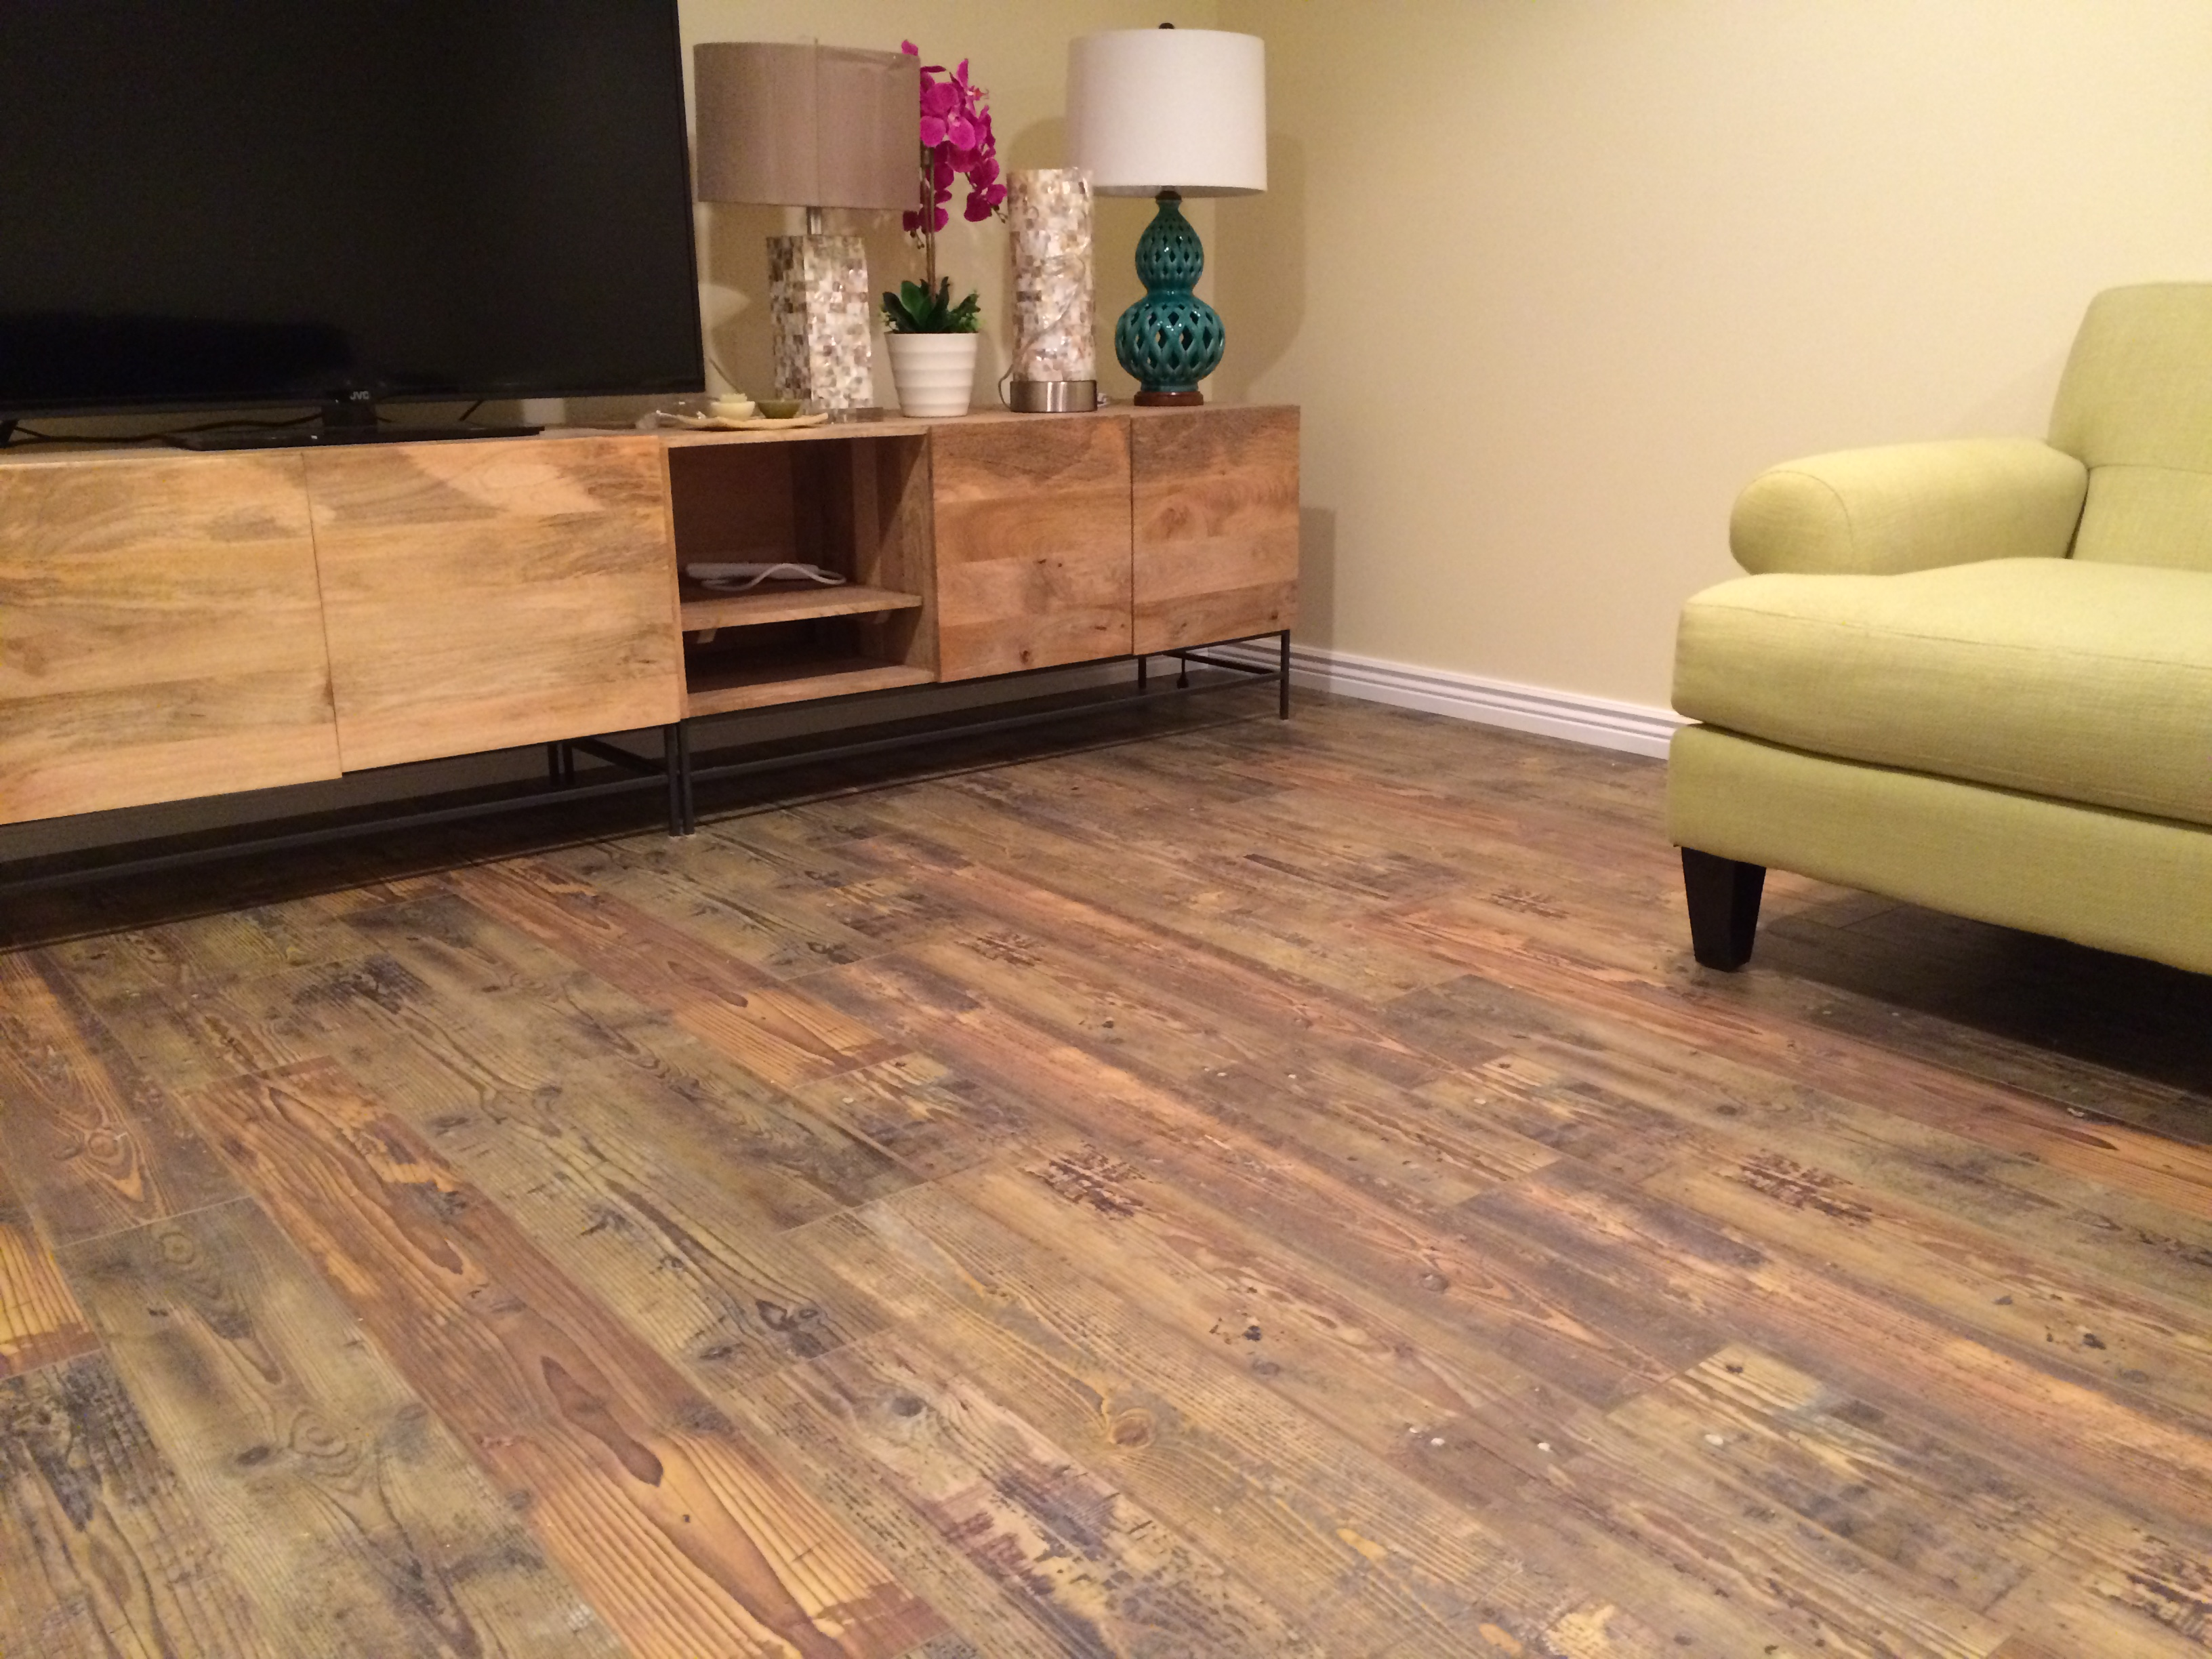 Laminate Flooring Picture Gallery : Barnwood mm laminate flooring photos vama